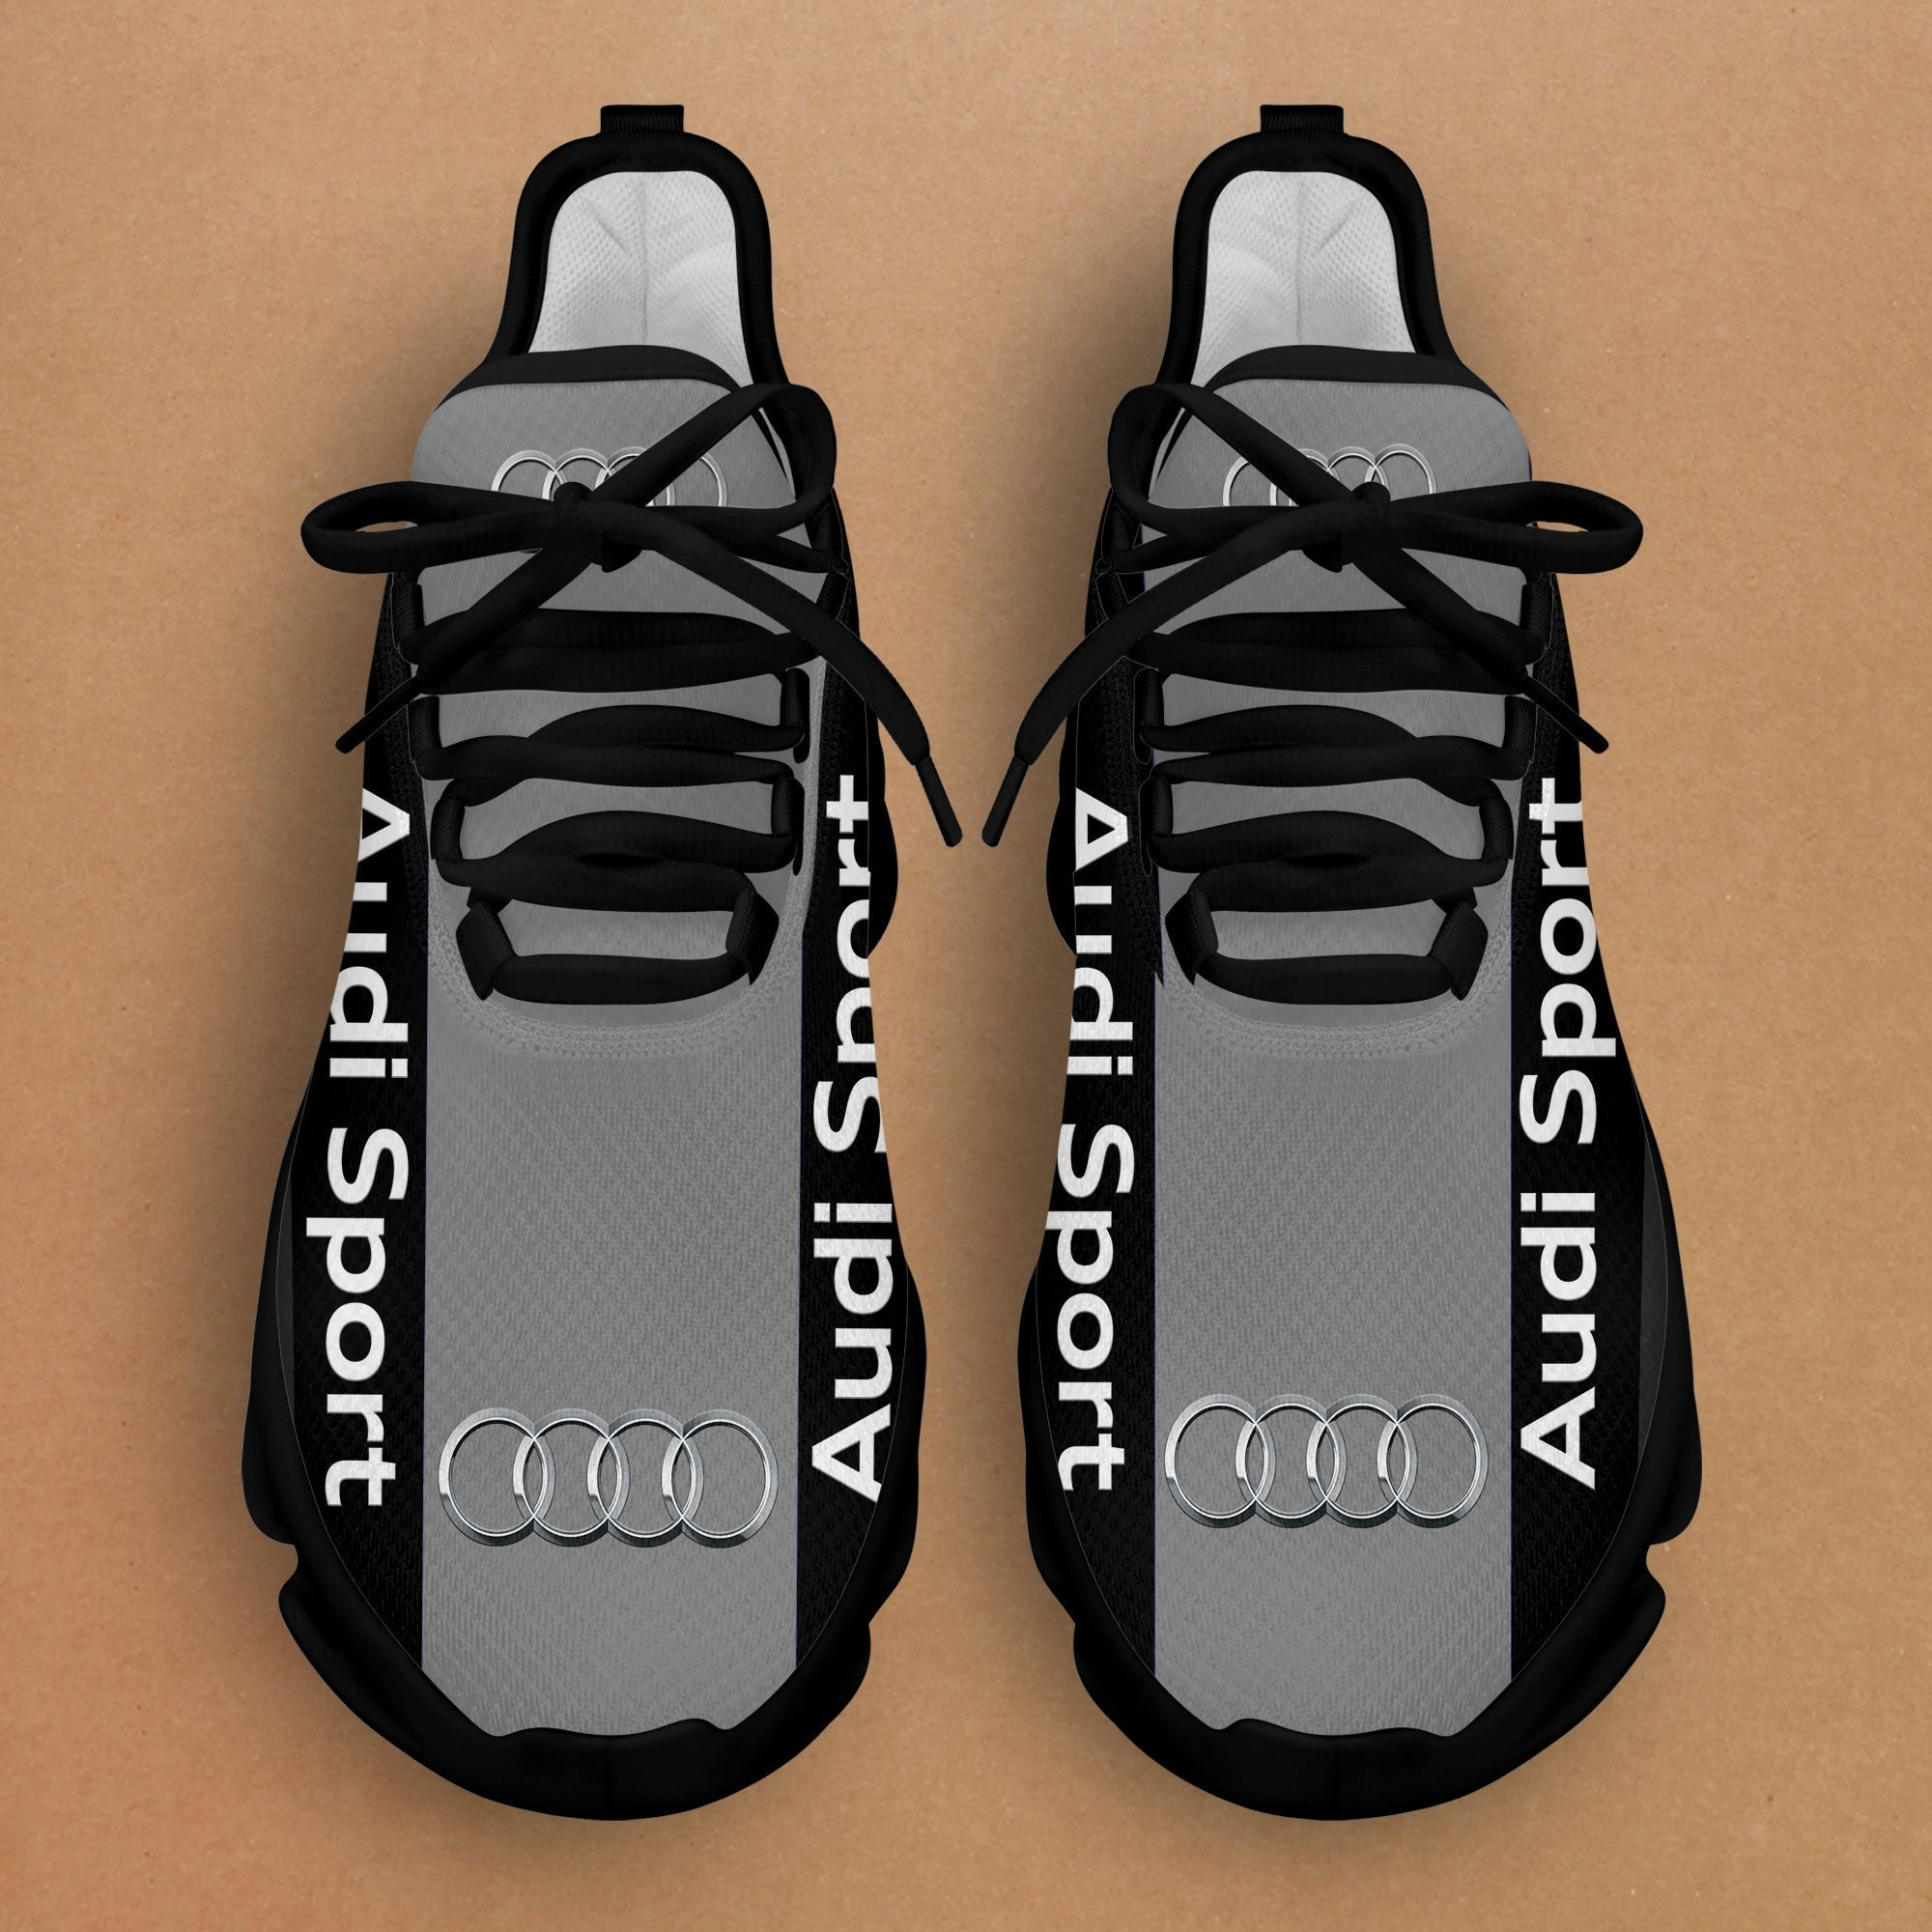 Audi Sport clunky max soul shoes 1